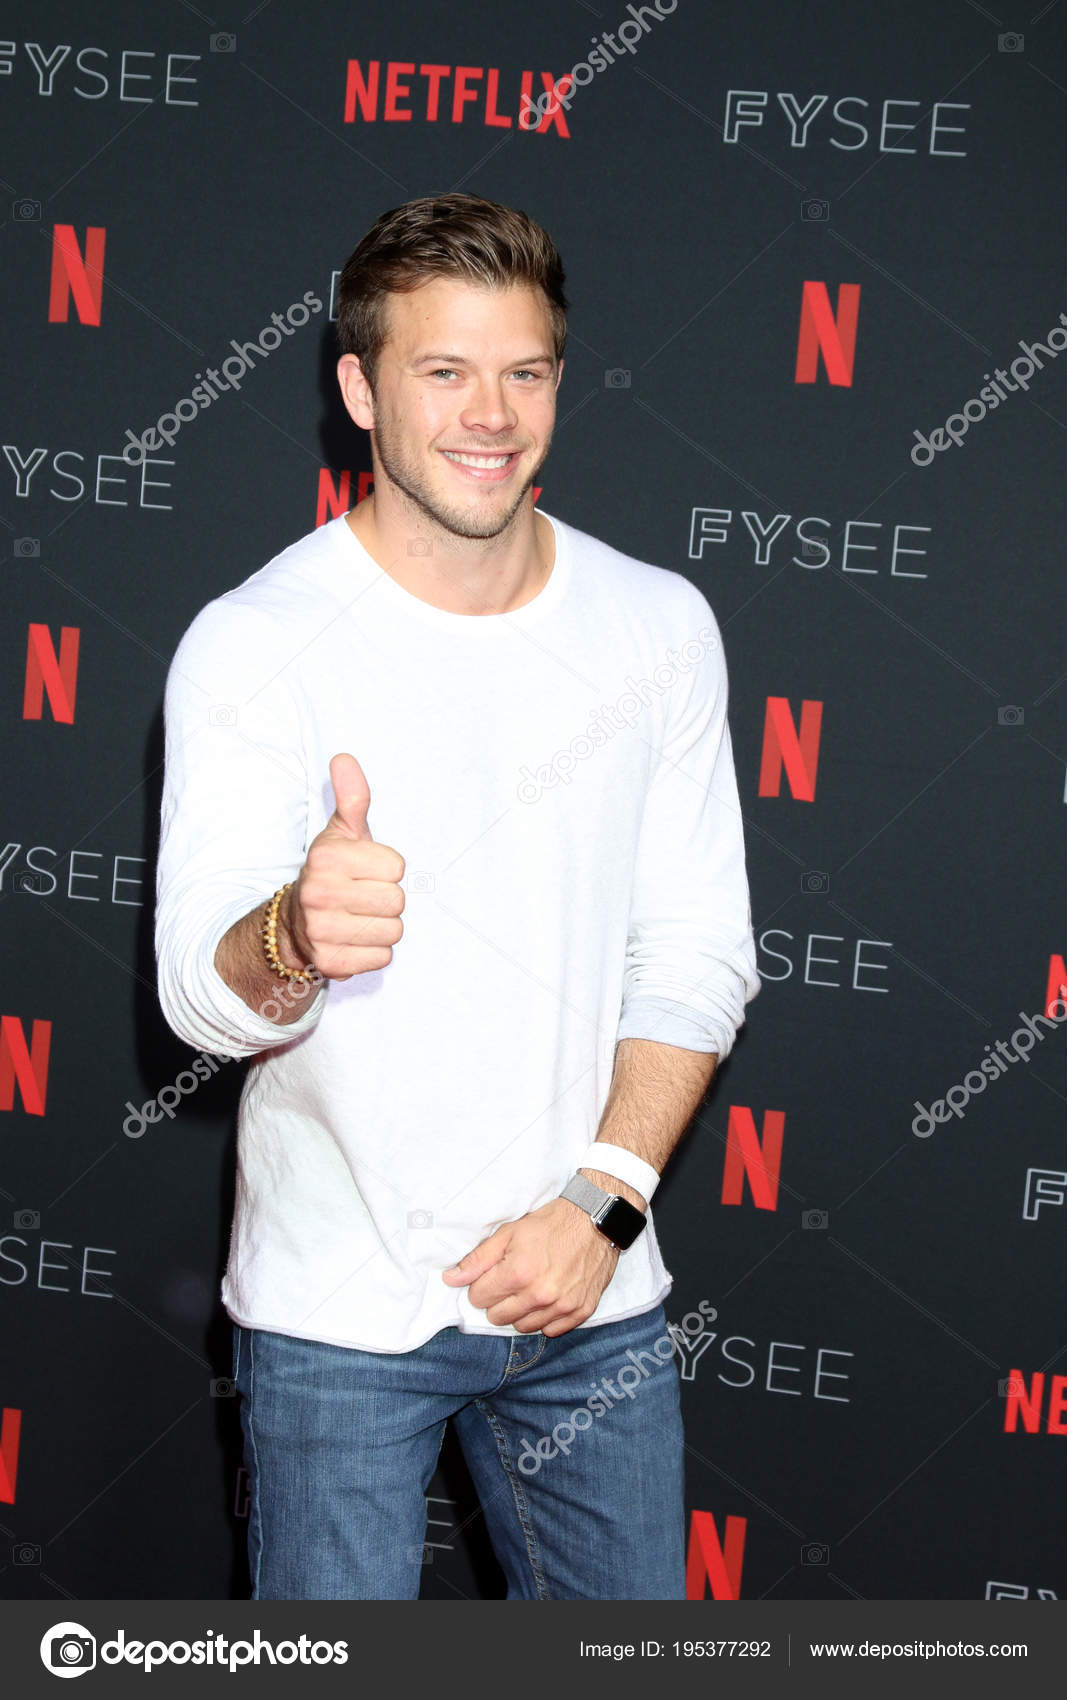 jimmy tatro agejimmy tatro фильмы, jimmy tatro facebook show, jimmy tatro stuber, jimmy tatro wdw, jimmy tatro instagram, jimmy tatro american vandal, jimmy tatro height, jimmy tatro youtube, jimmy tatro real bros, jimmy tatro, jimmy tatro imdb, jimmy tatro 22 jump street, jimmy tatro twitter, jimmy tatro emily osment, jimmy tatro stoned questions, jimmy tatro maxpreps, jimmy tatro modern family, jimmy tatro movies, jimmy tatro fraternity, jimmy tatro age